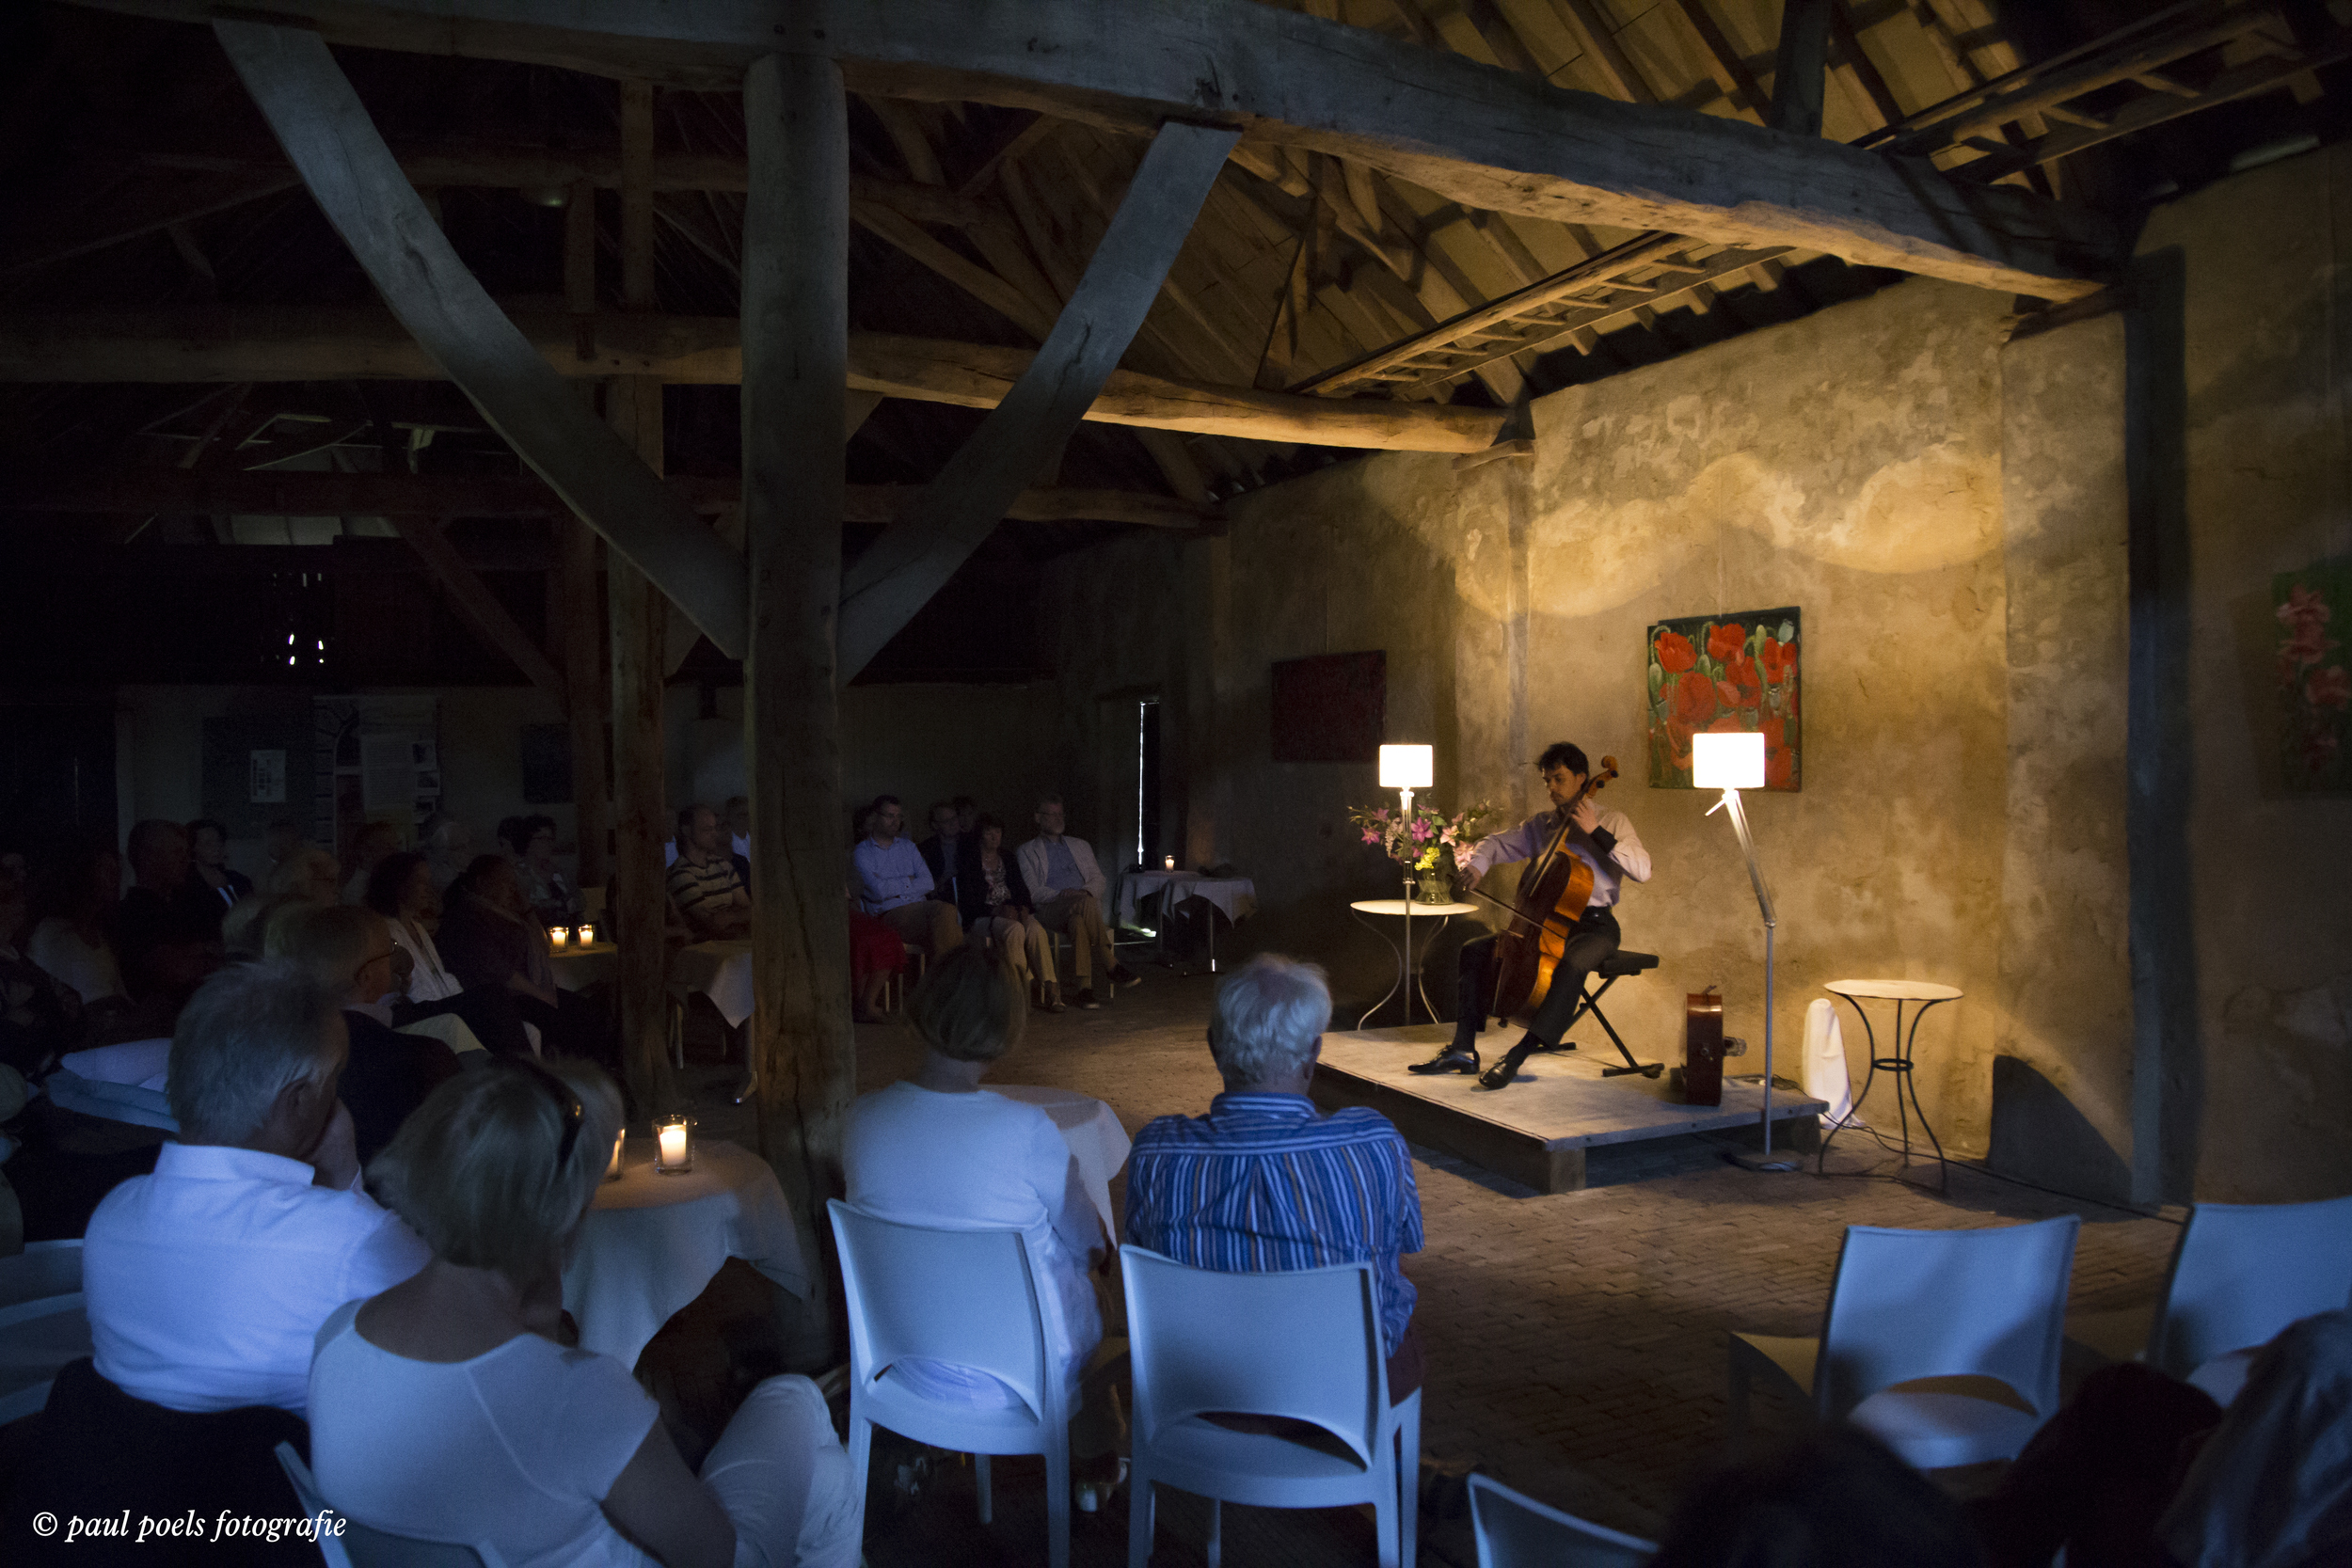 7th-June- Bach-in-het-Kasteelke-Meerlo-Detmar-Leertouwer-Dominus-Maris-Music-Productions.jpg